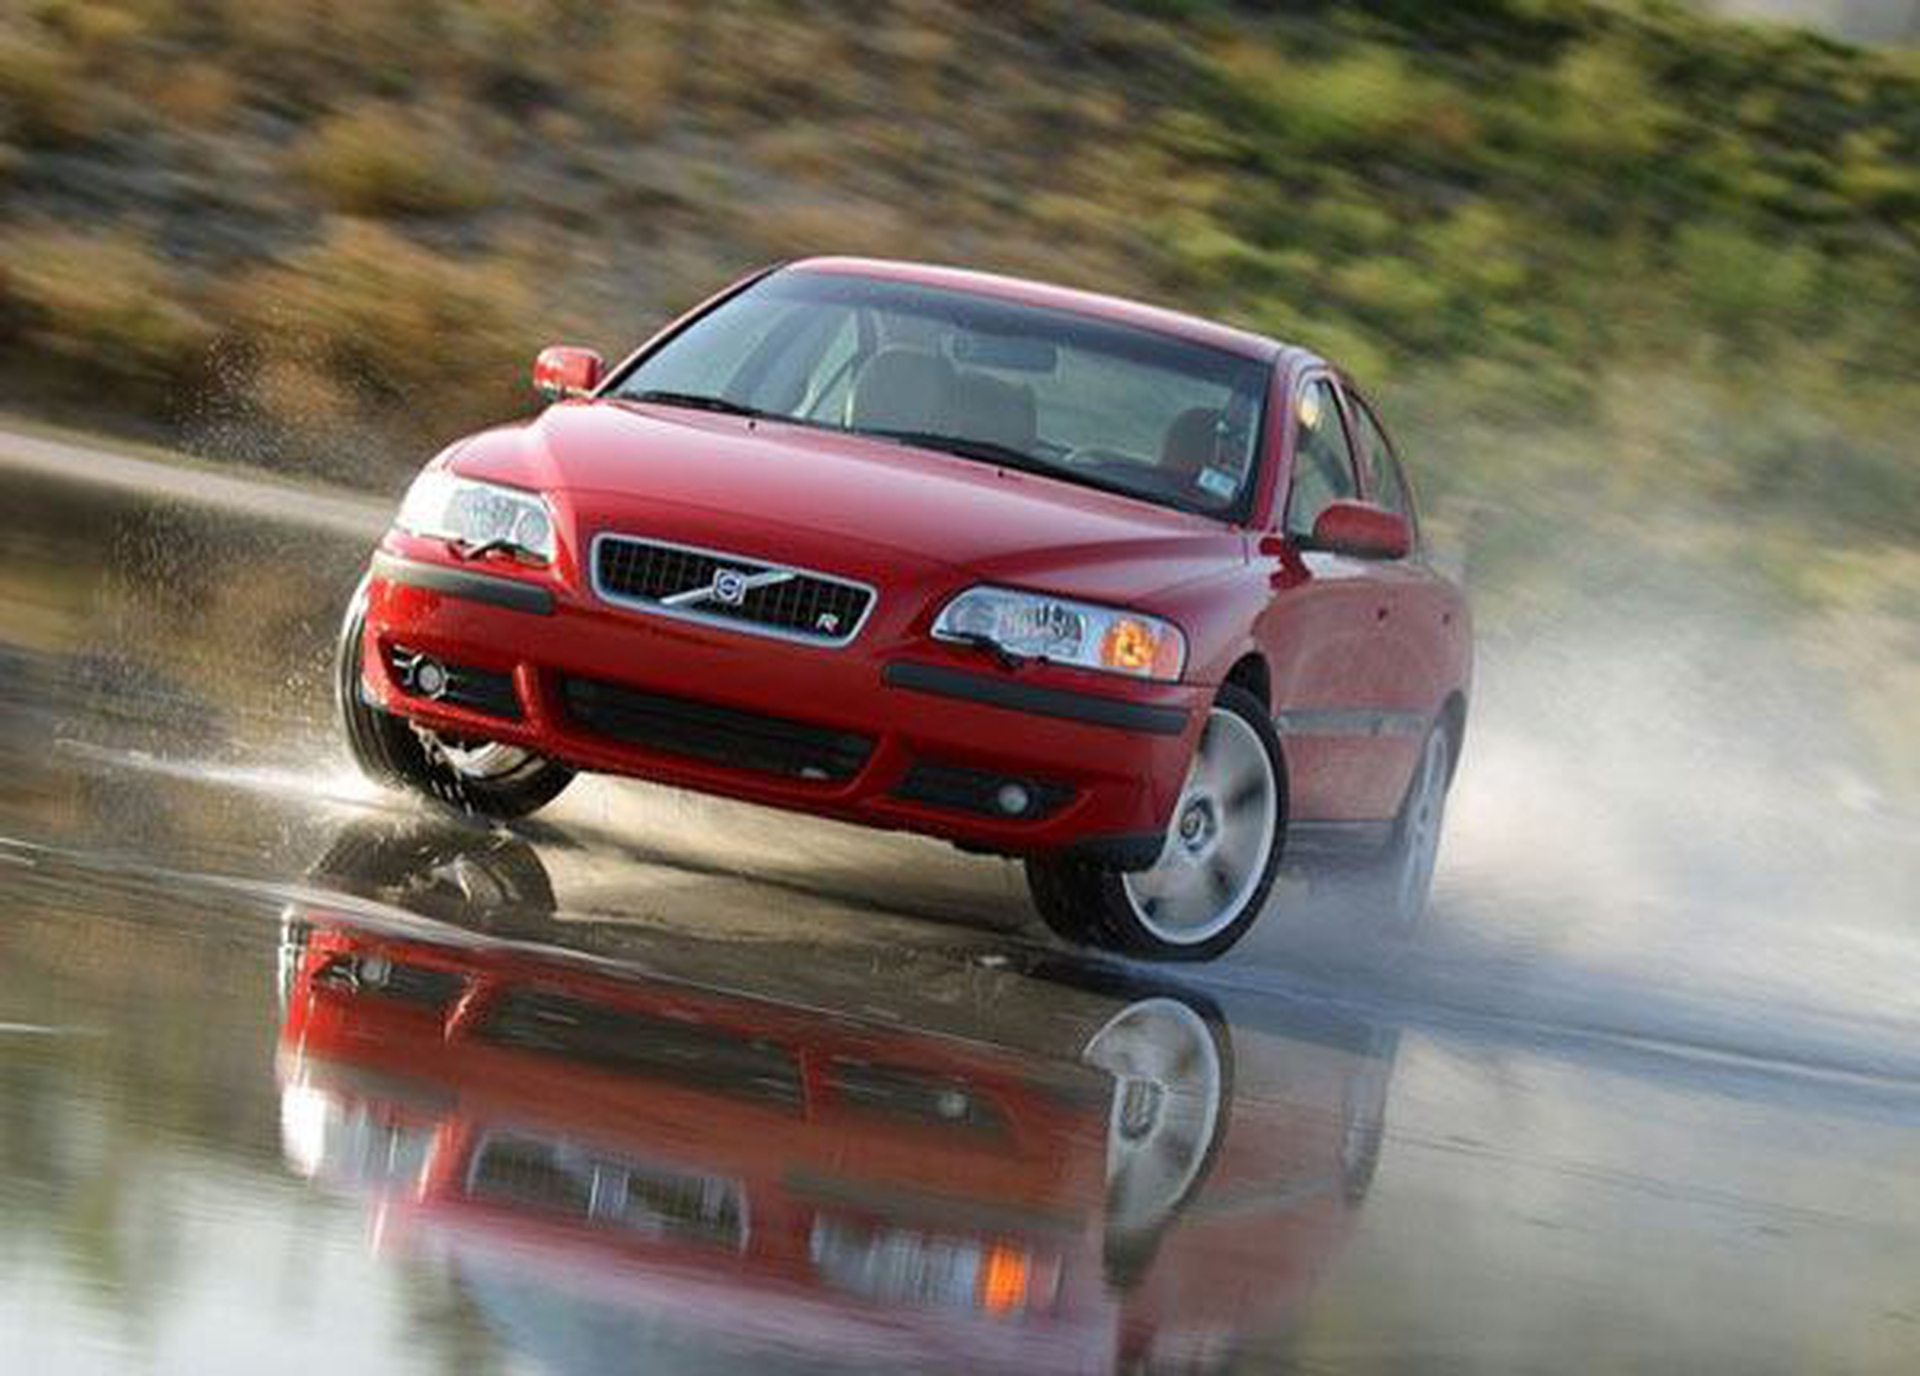 Hydroplaning Prevention & Recovery